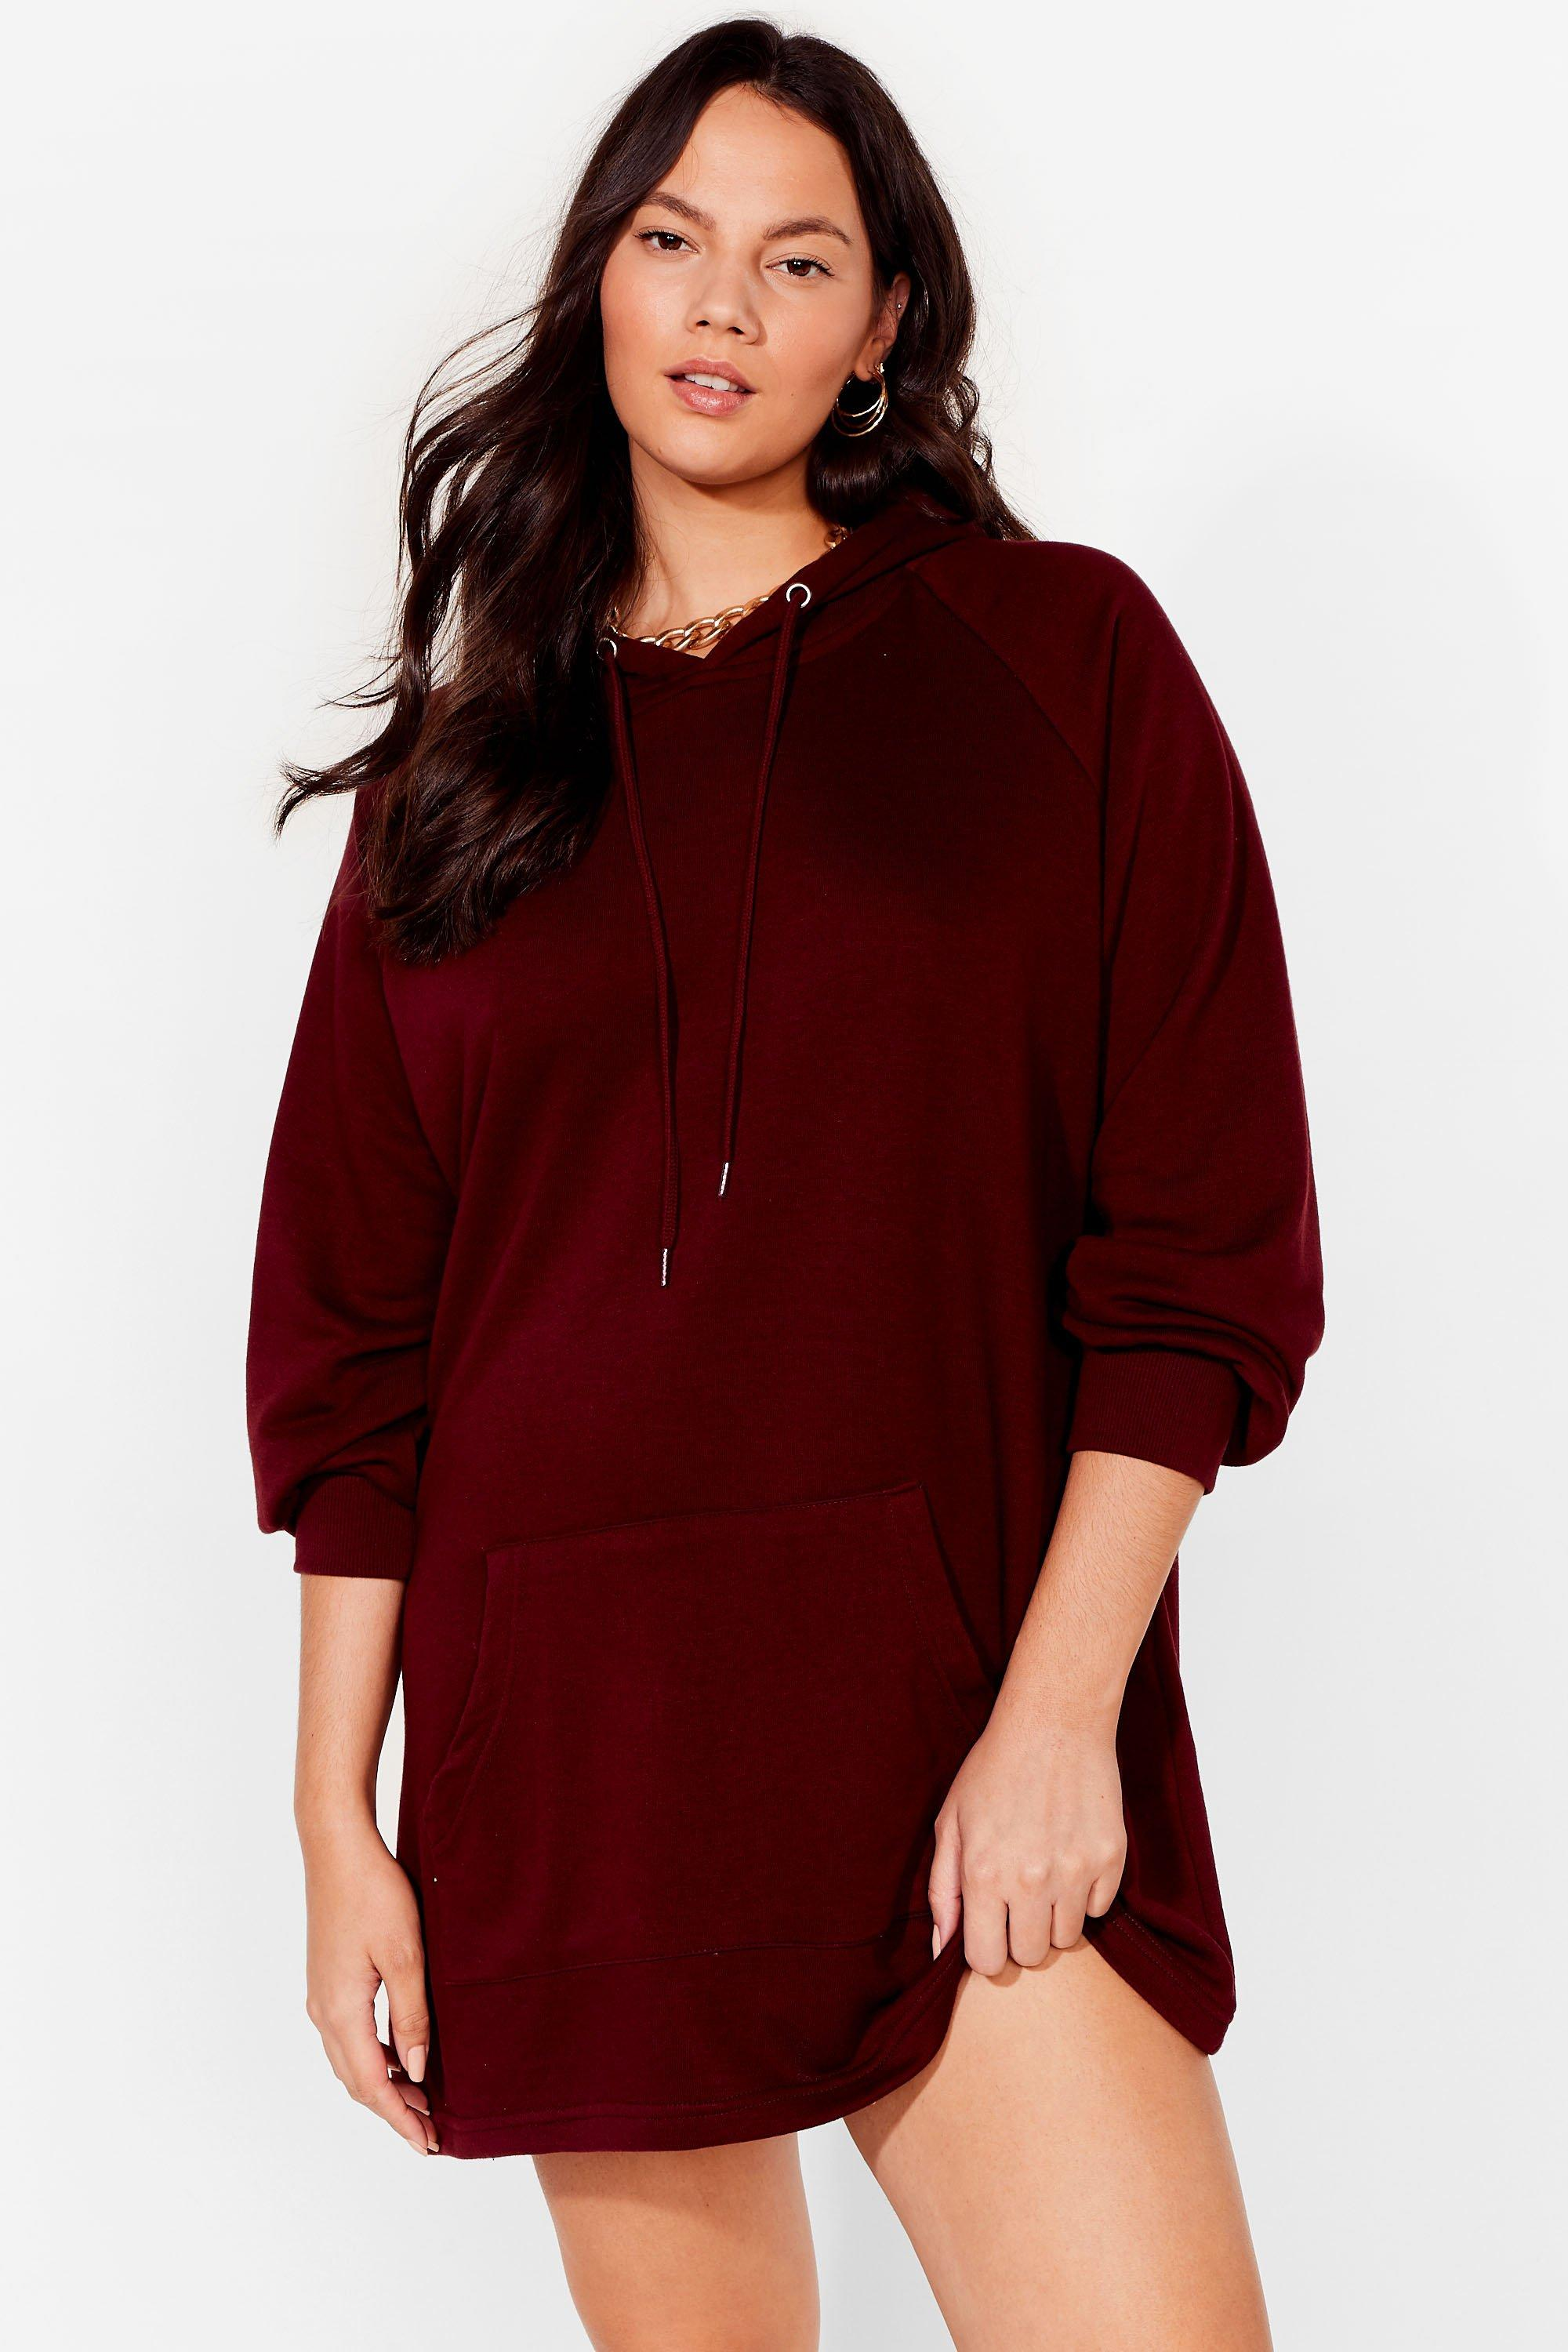 All Night Longline Plus Sweatshirt Dress 14